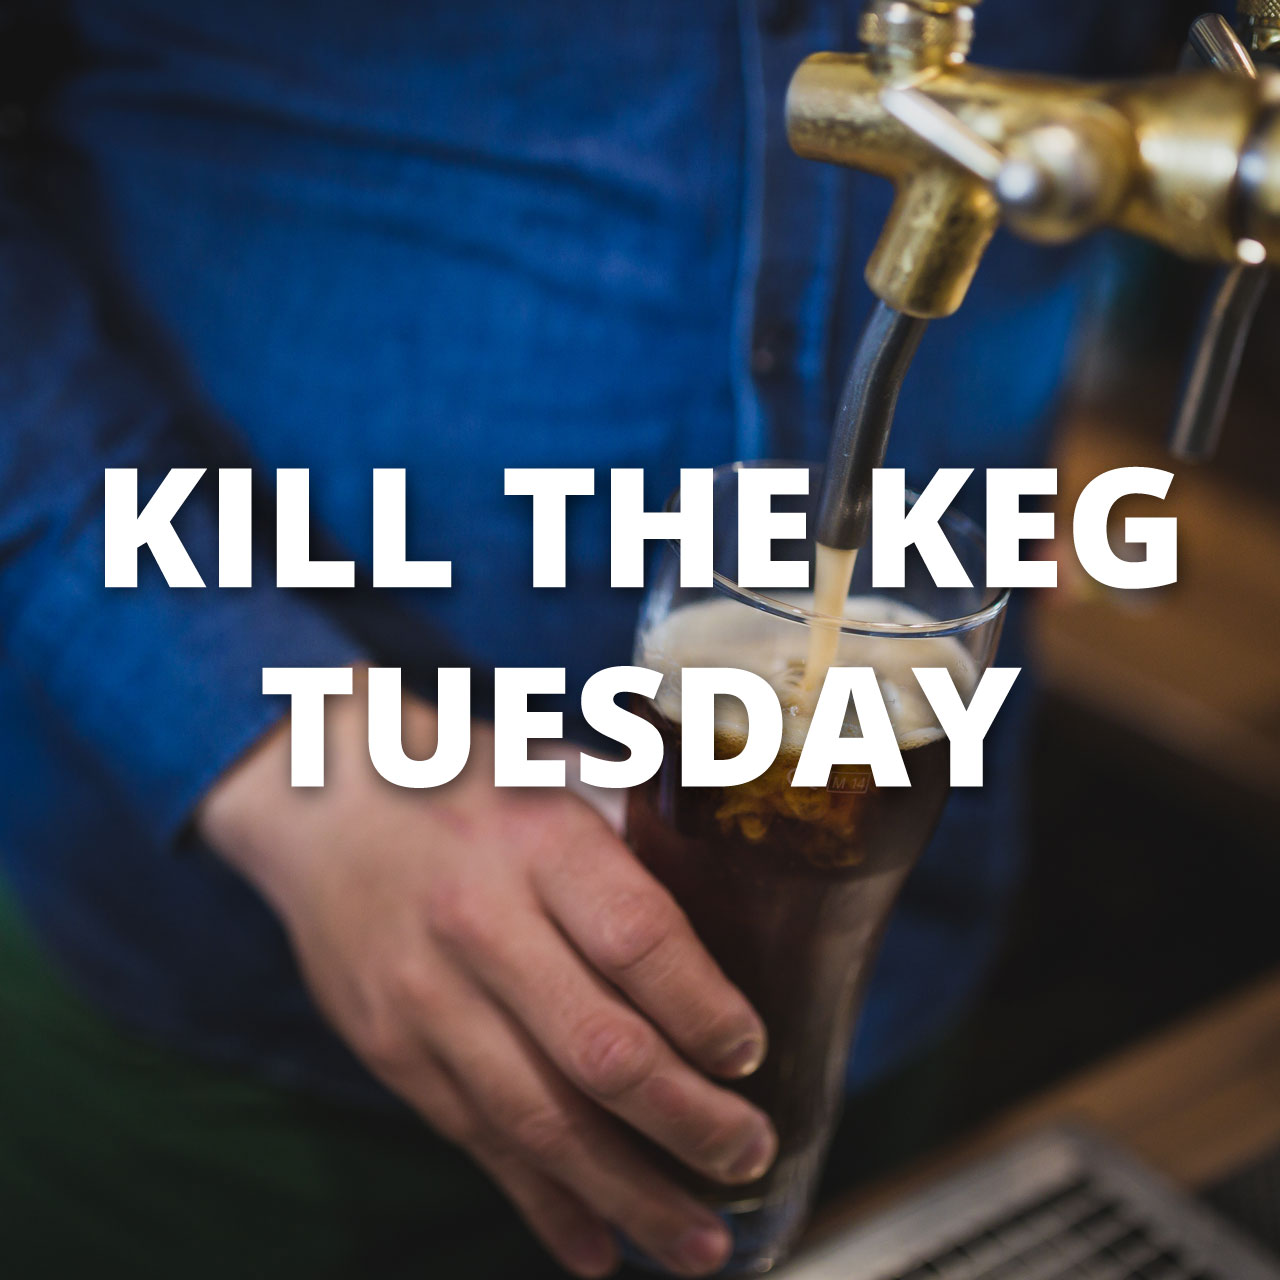 kill-the-keg-tuesday